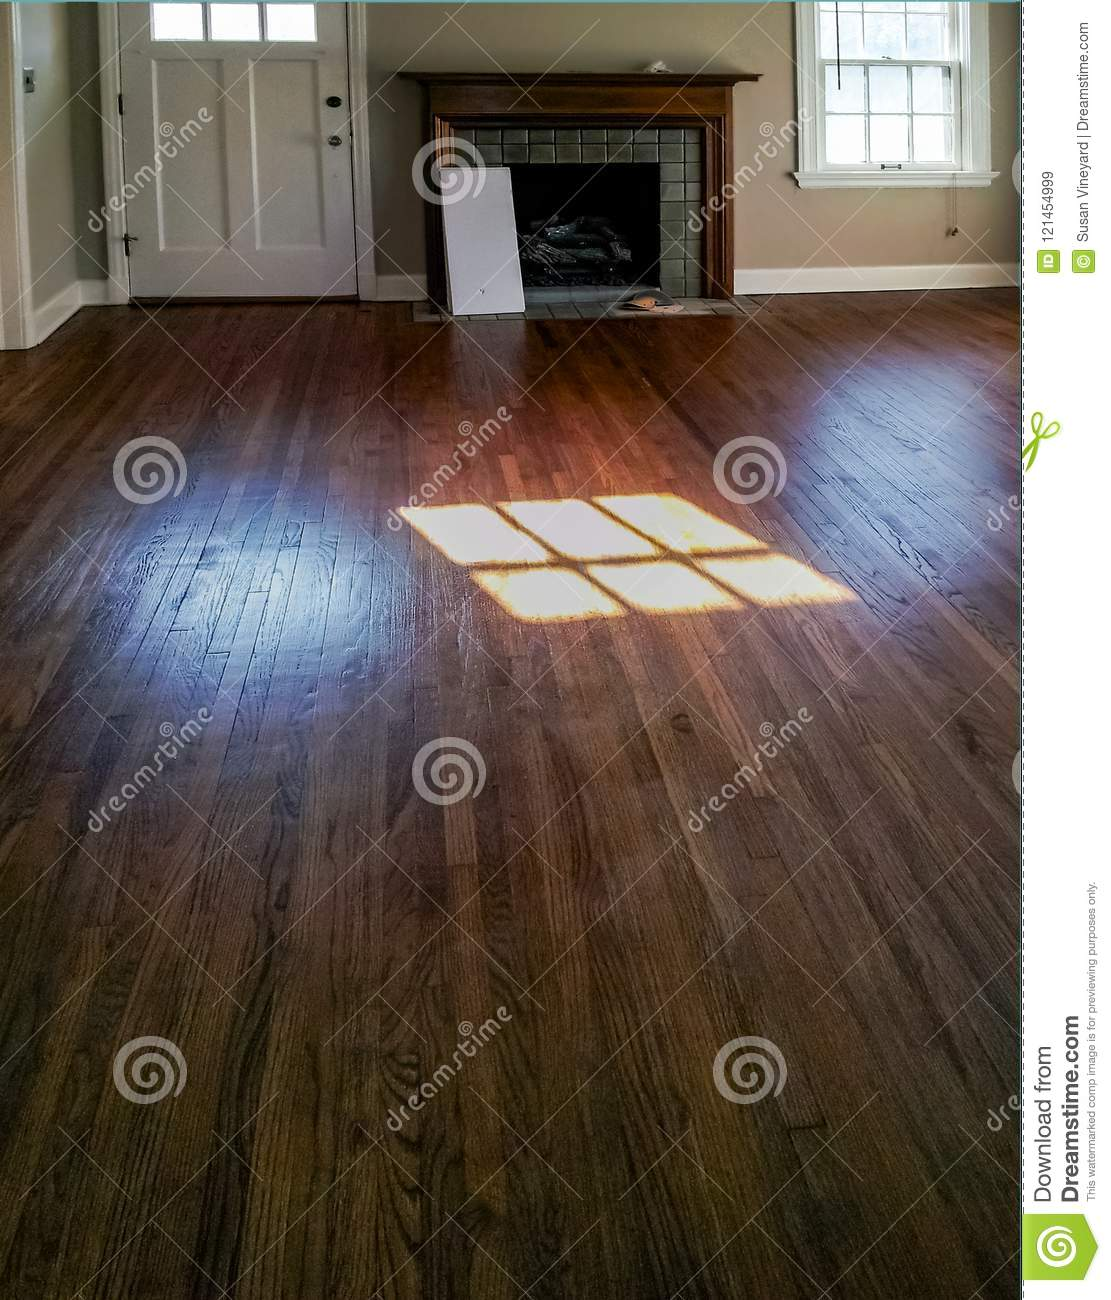 Room in empty house with no furniture and wood floors and a fireplace being gotten ready to rent...with reflection of window in th